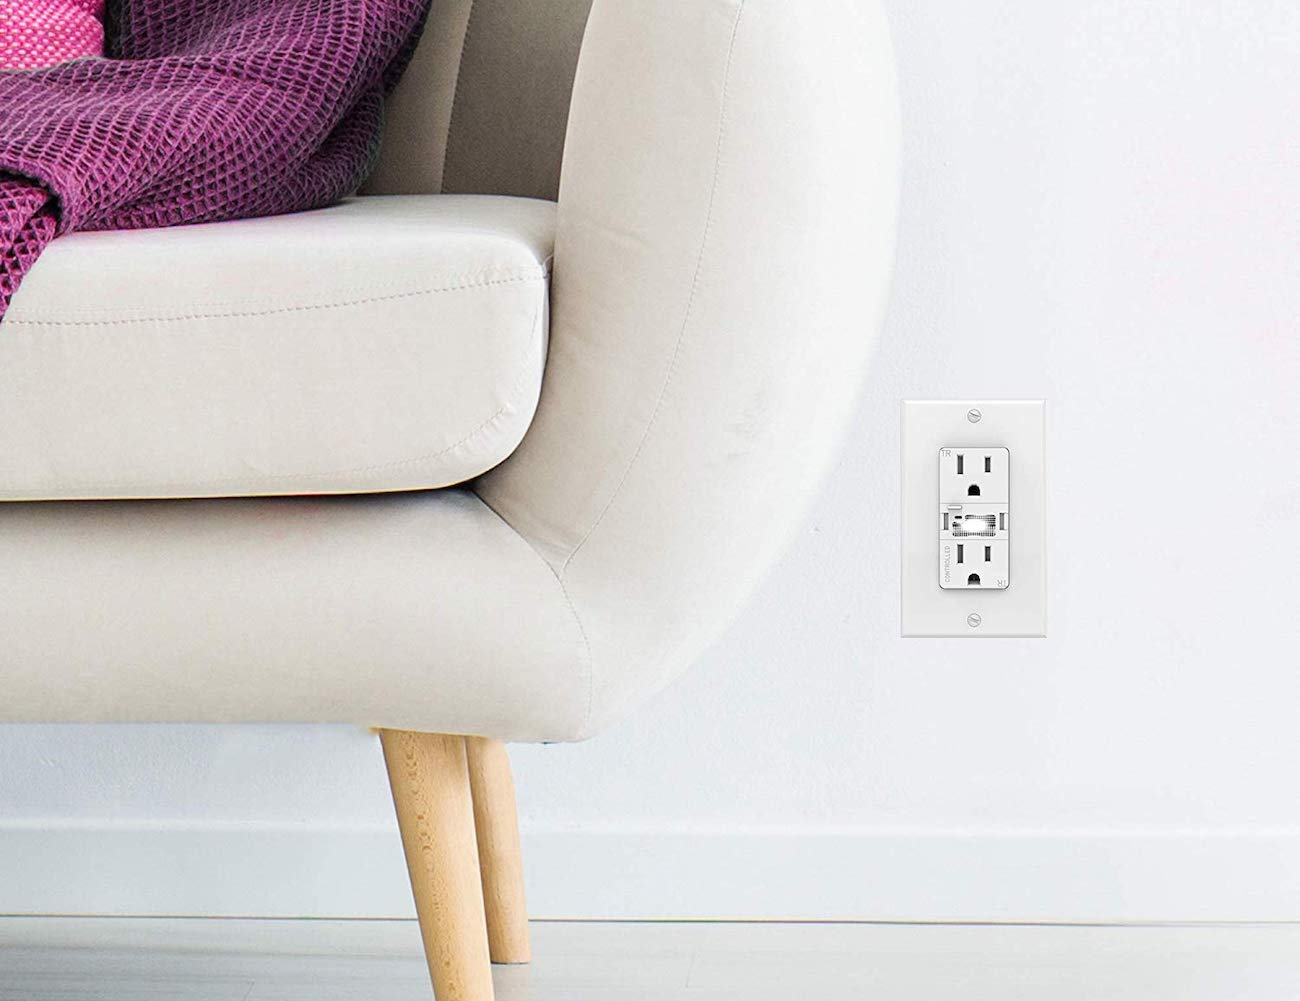 Swidget Customizable 15A Smart Outlet makes life a whole lot more convenient